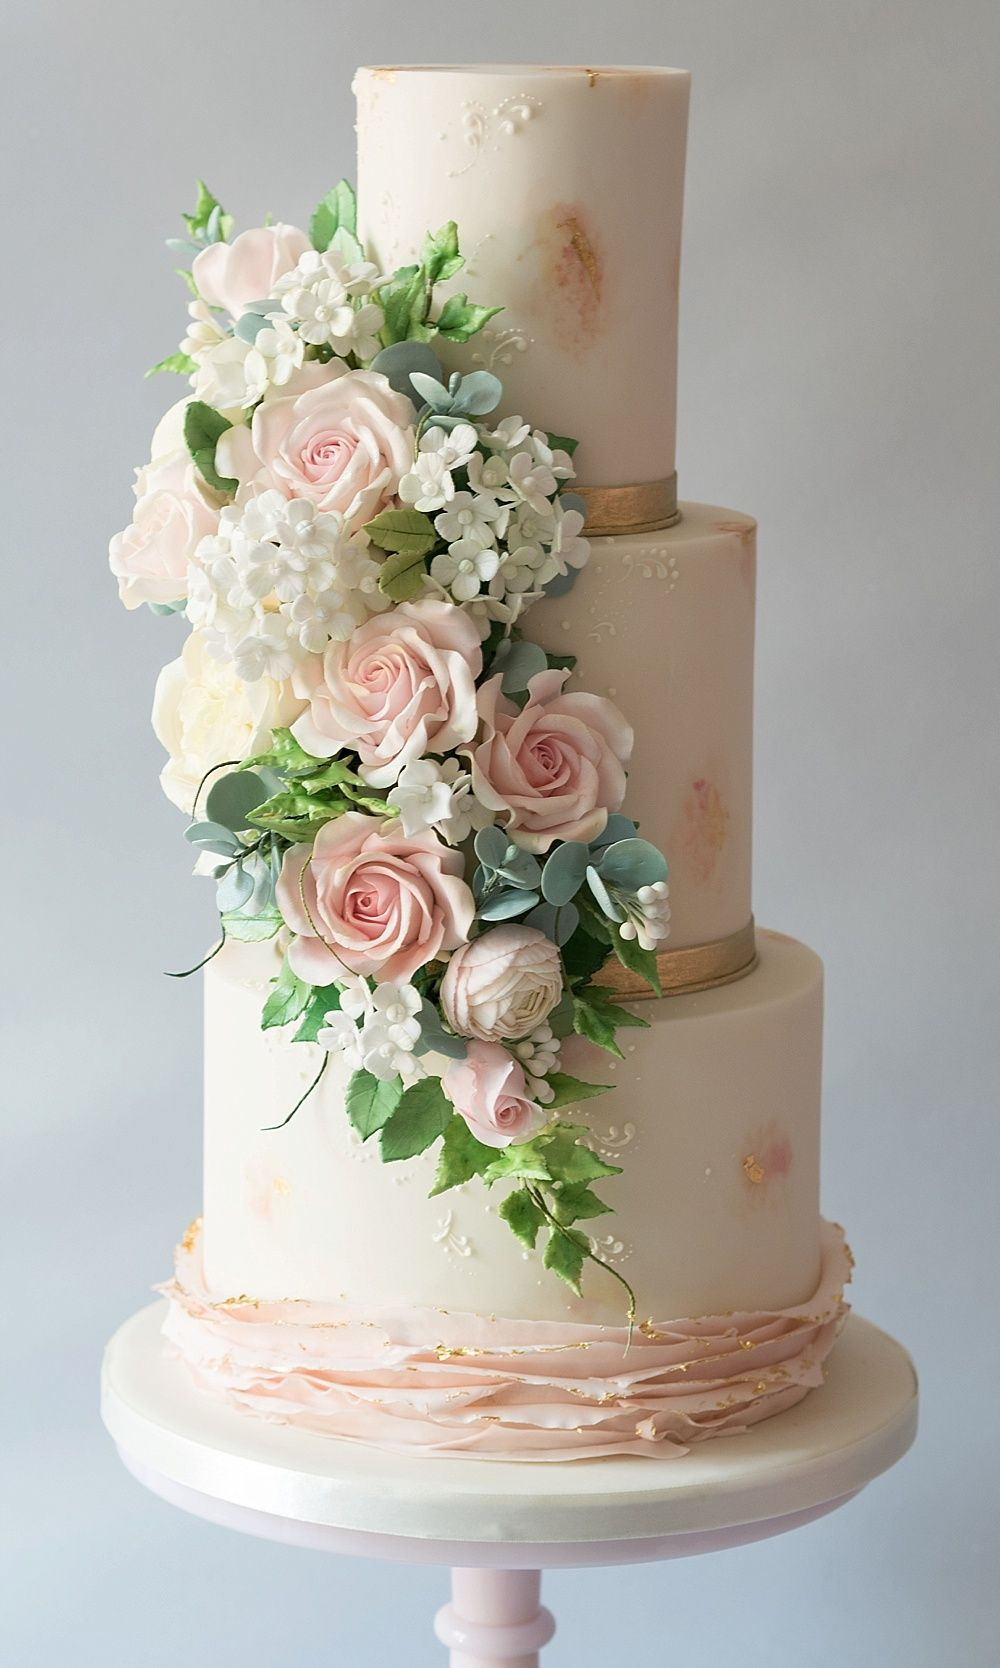 The Best Iced Wedding Cakes From UK Wedding Suppliers